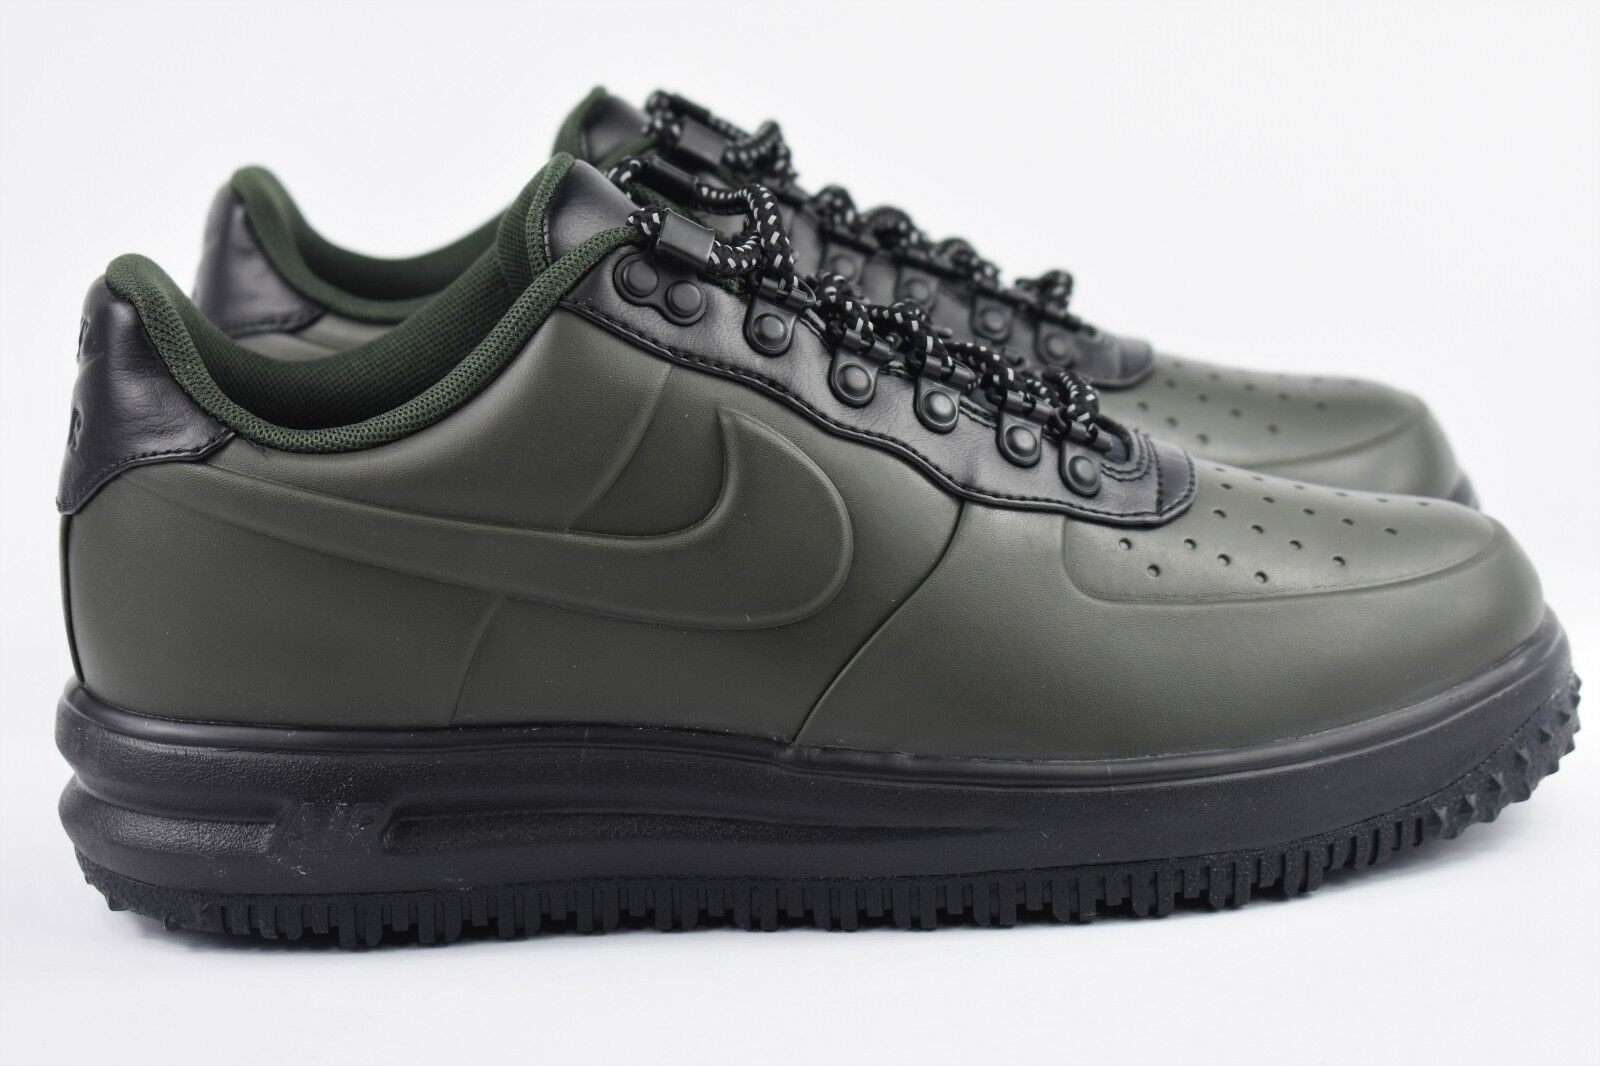 Nike Lunar Force 1 Duckboot LF1 Mens Comfortable Great discount